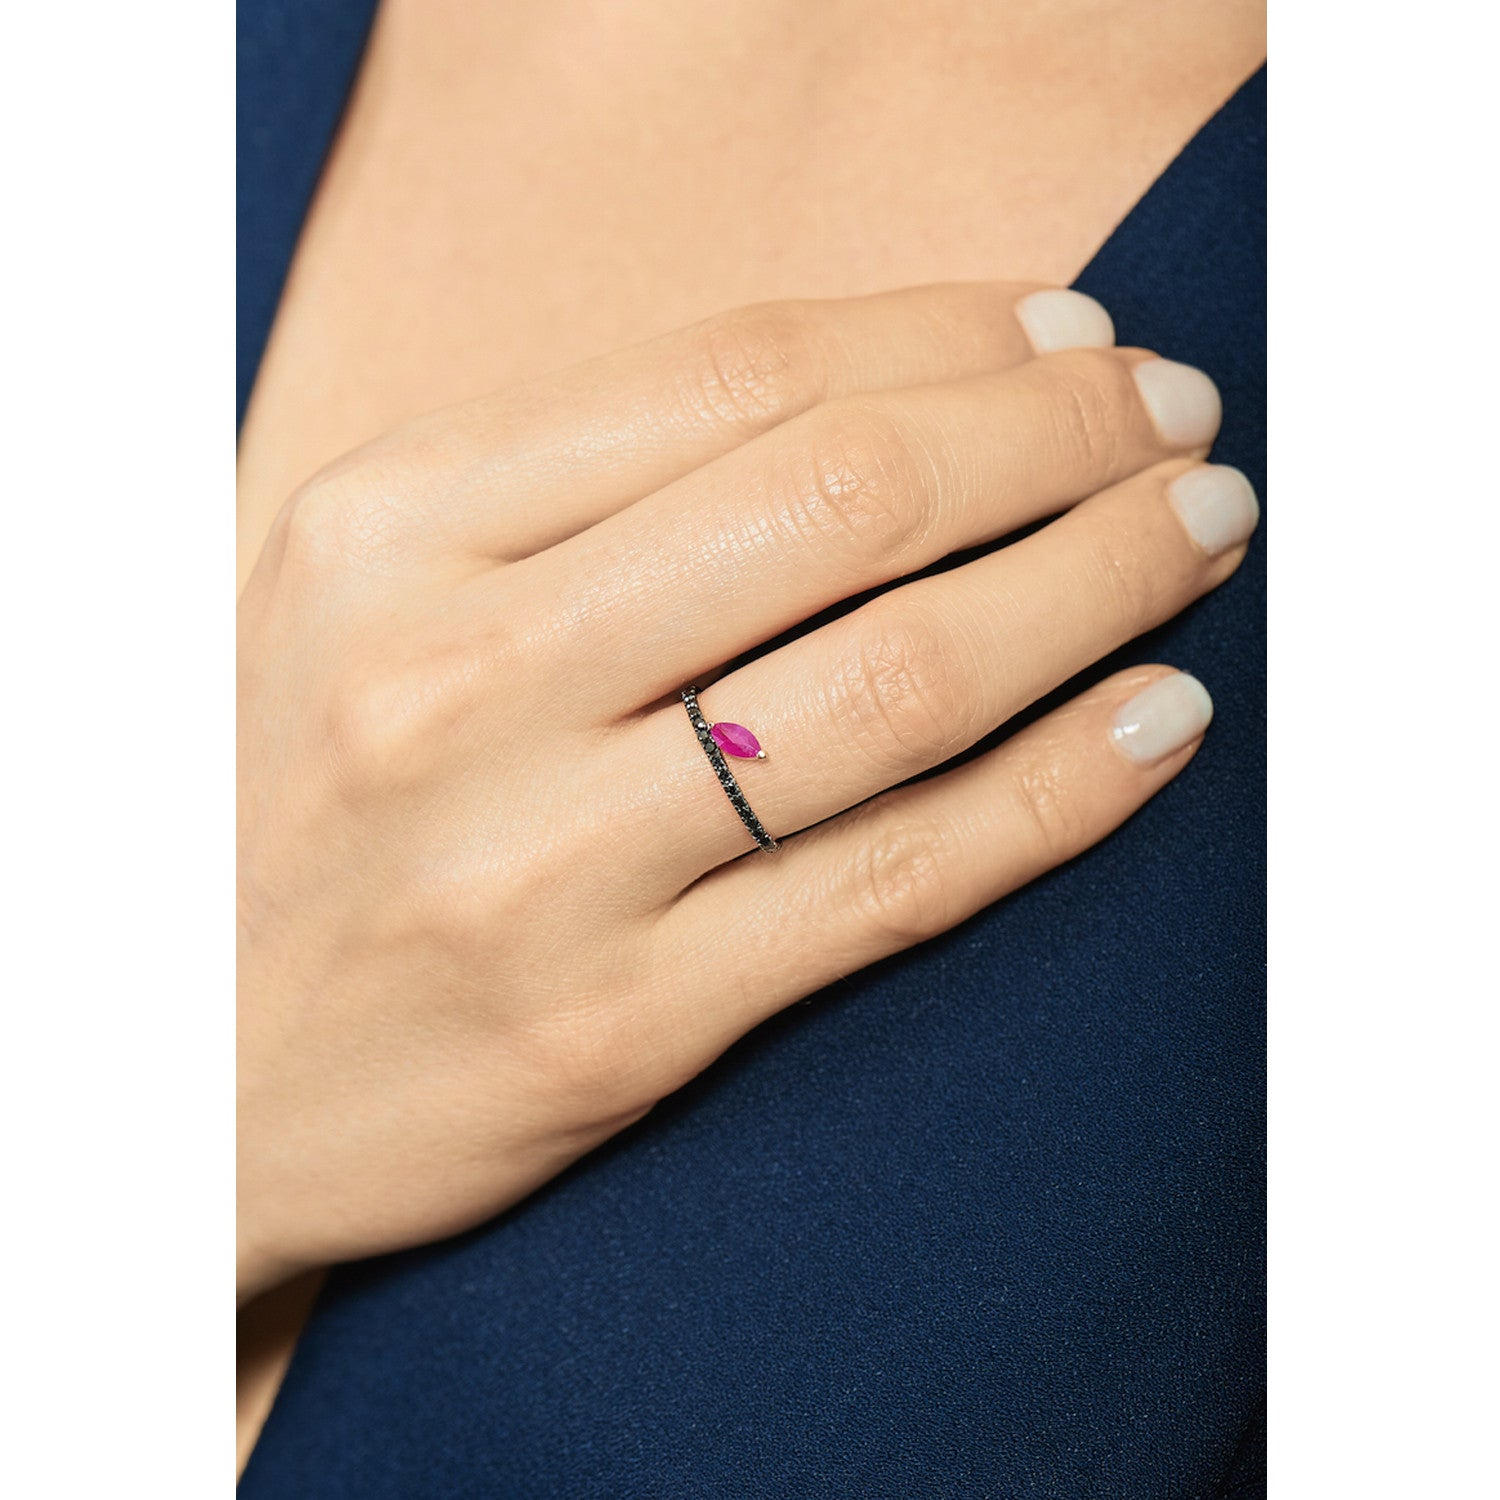 Selin Kent 14K Defne Pavé Ring with Ruby Marquise and Black Diamonds - On Model